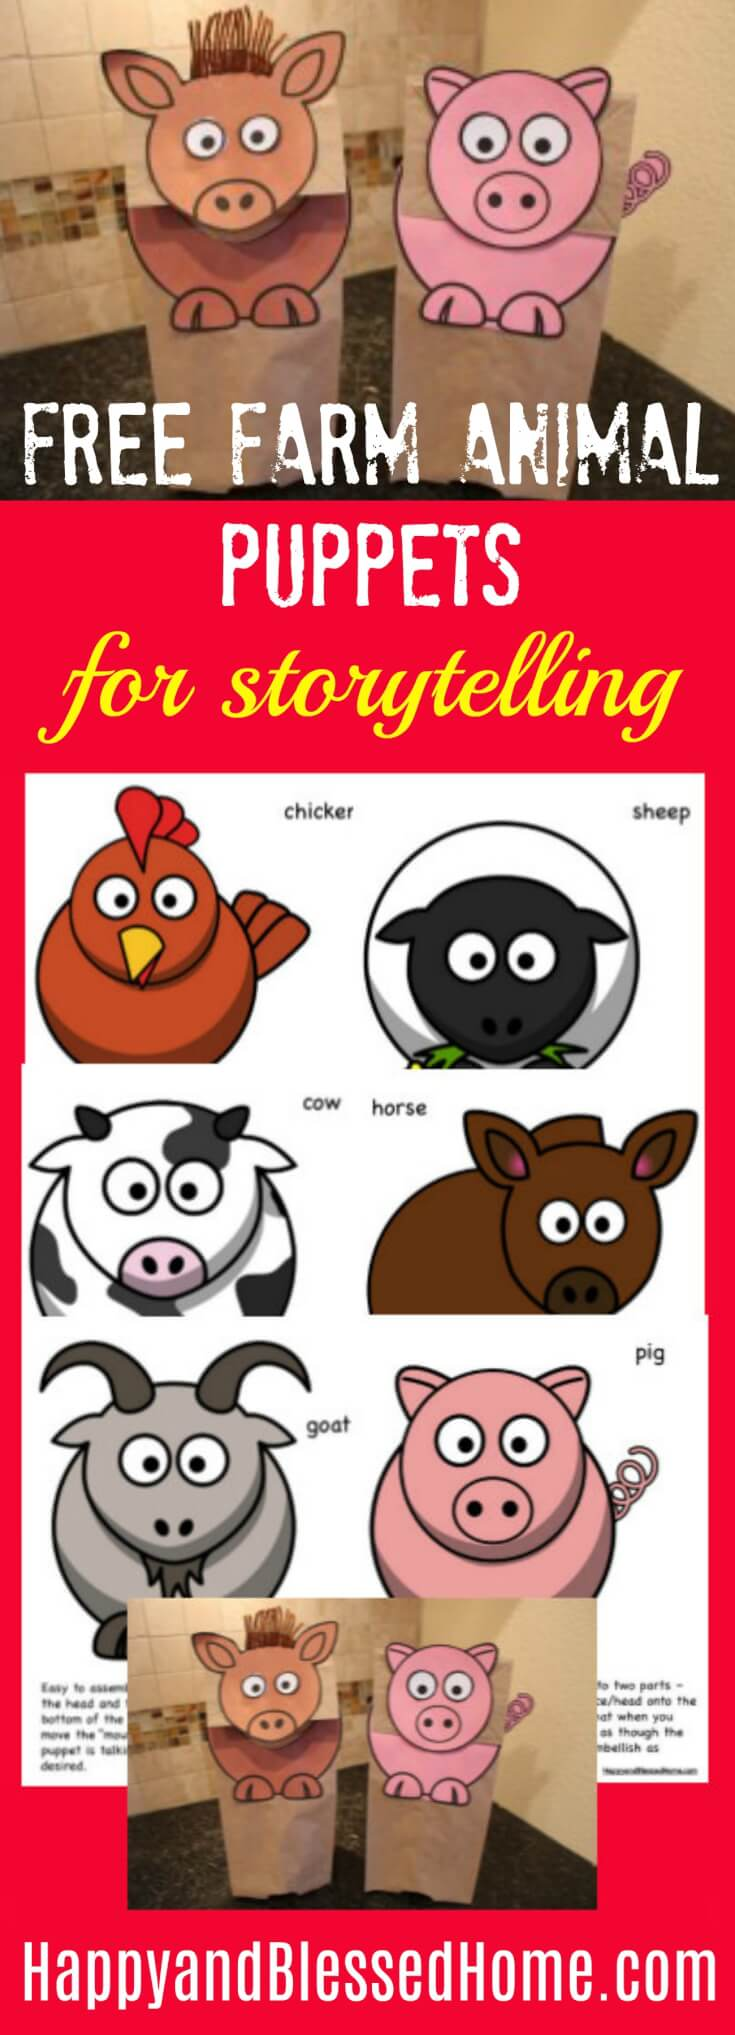 Adorable FREE Farm Animal Puppets for Storytelling with Toddlers or Preschool Aged Children